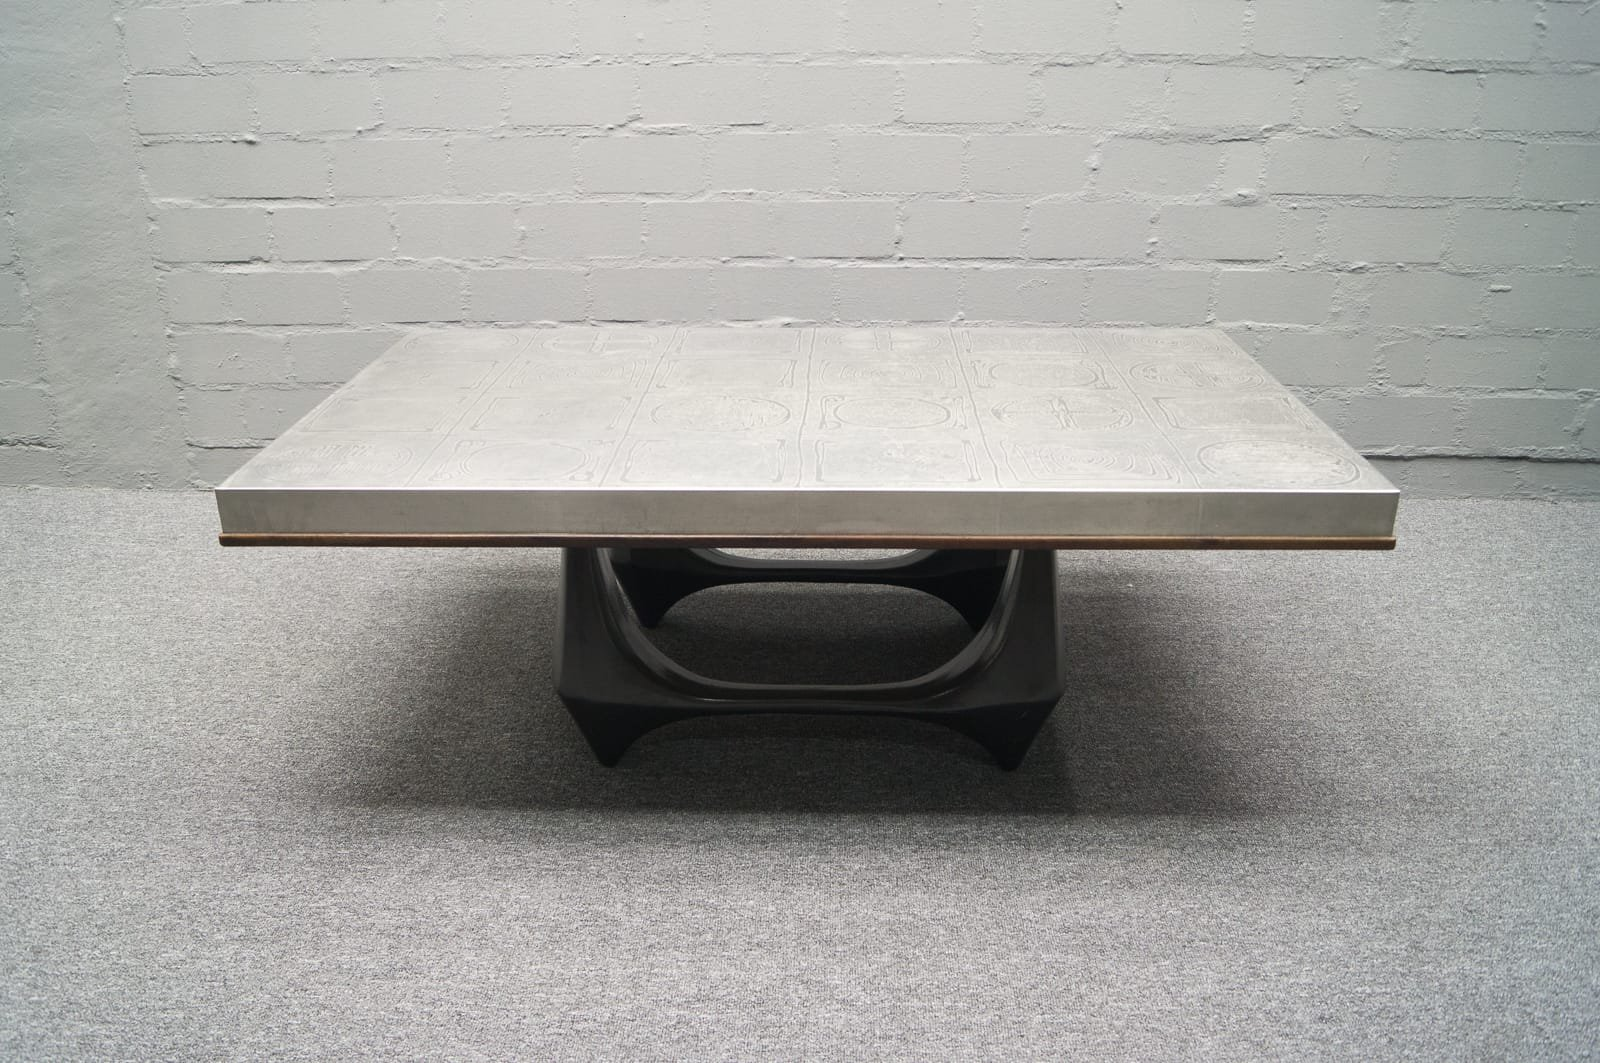 Aluminum coffee table by heinz lilienthal 1960s for sale at pamono aluminum coffee table by heinz lilienthal 1960s geotapseo Gallery